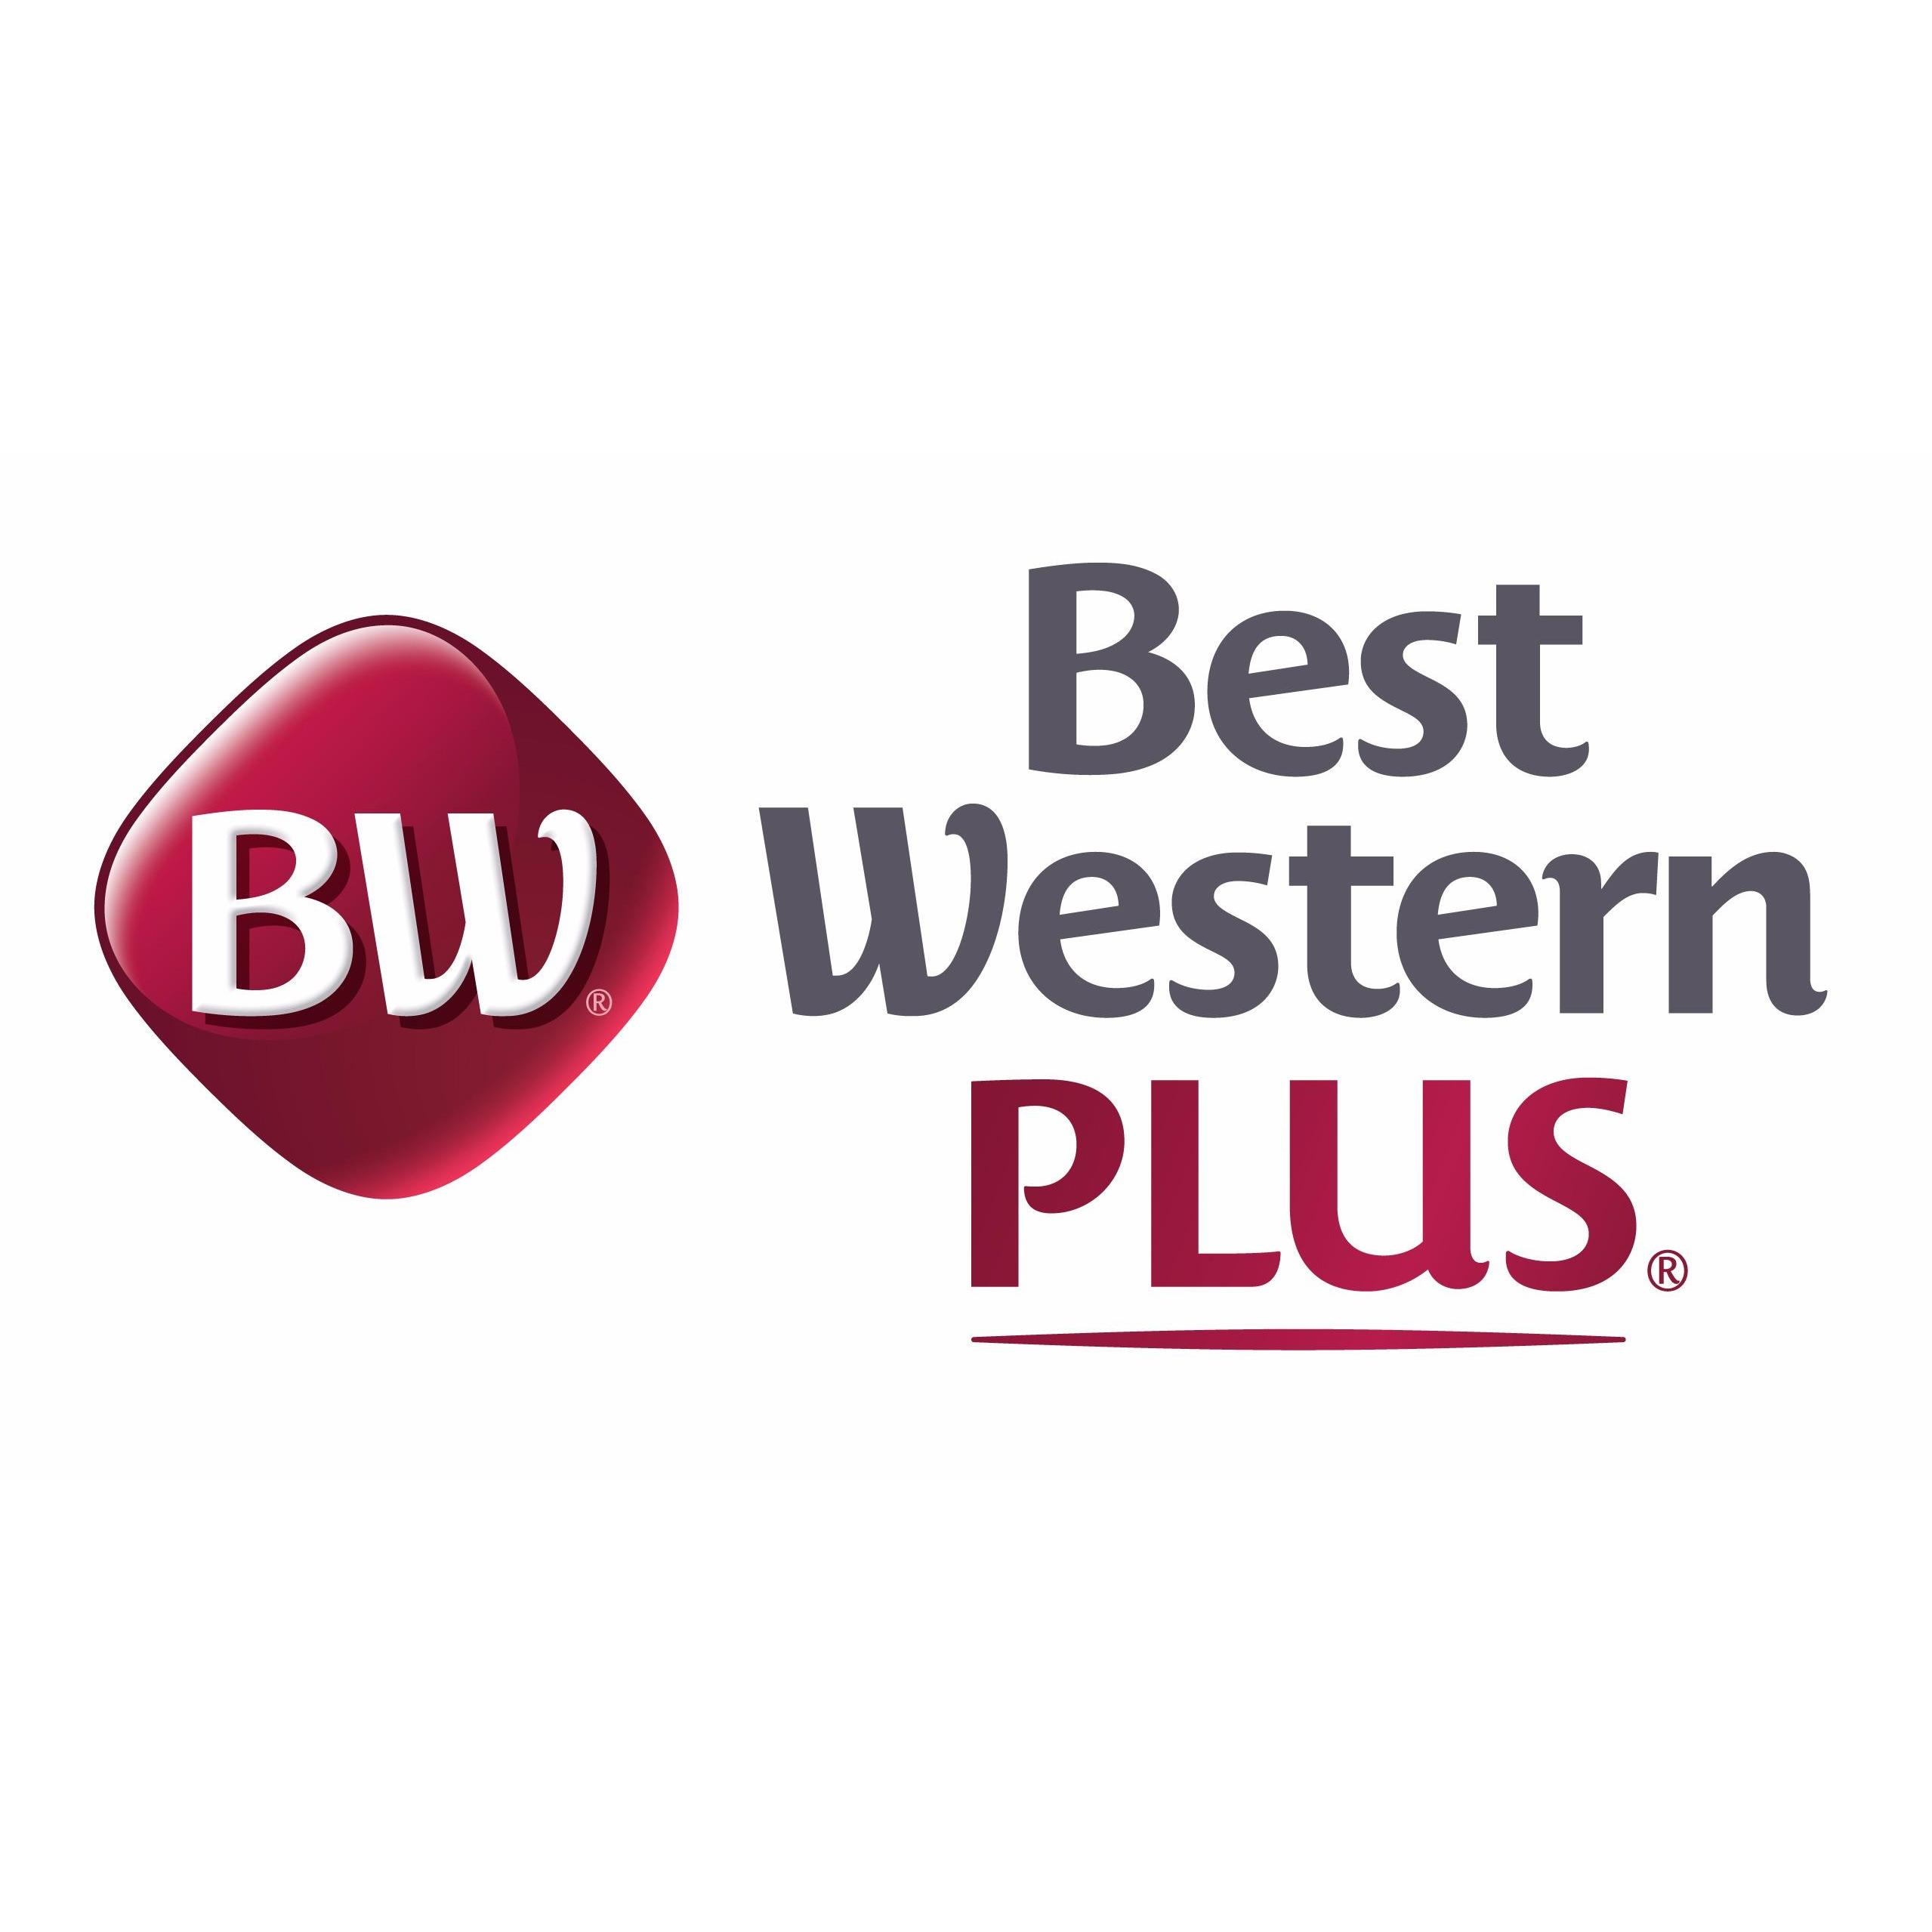 Best Western Plus Peoria - East Peoria, IL - Hotels & Motels